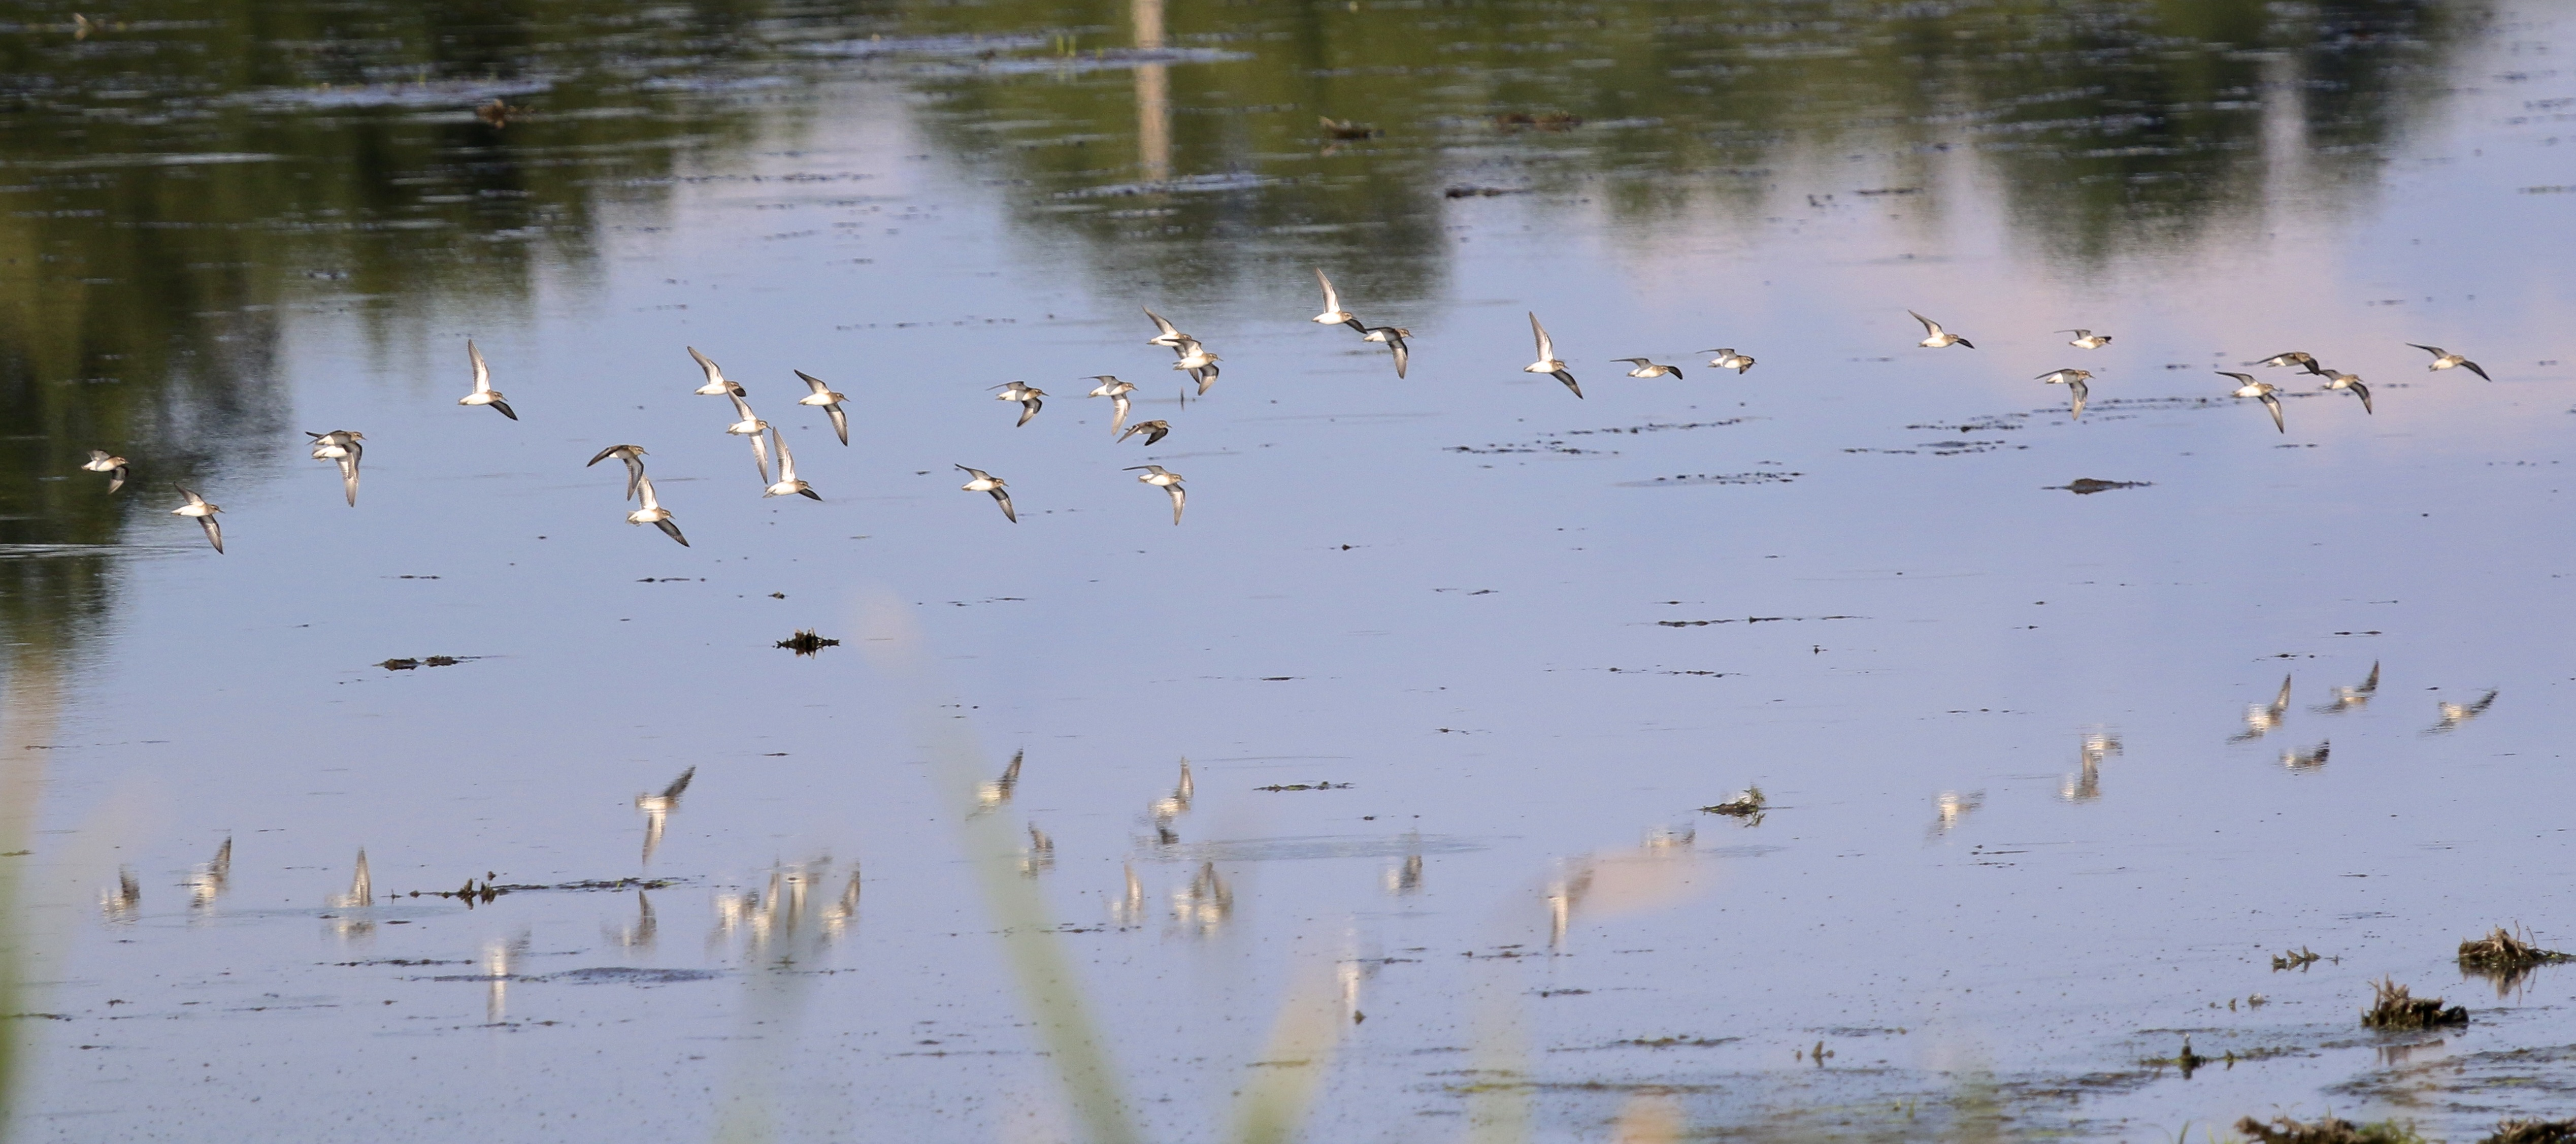 ~Shorebirds in flight (likely Least Sandpipers) at 6 1/2 Station Road Sanctuary, 8/23/15.~